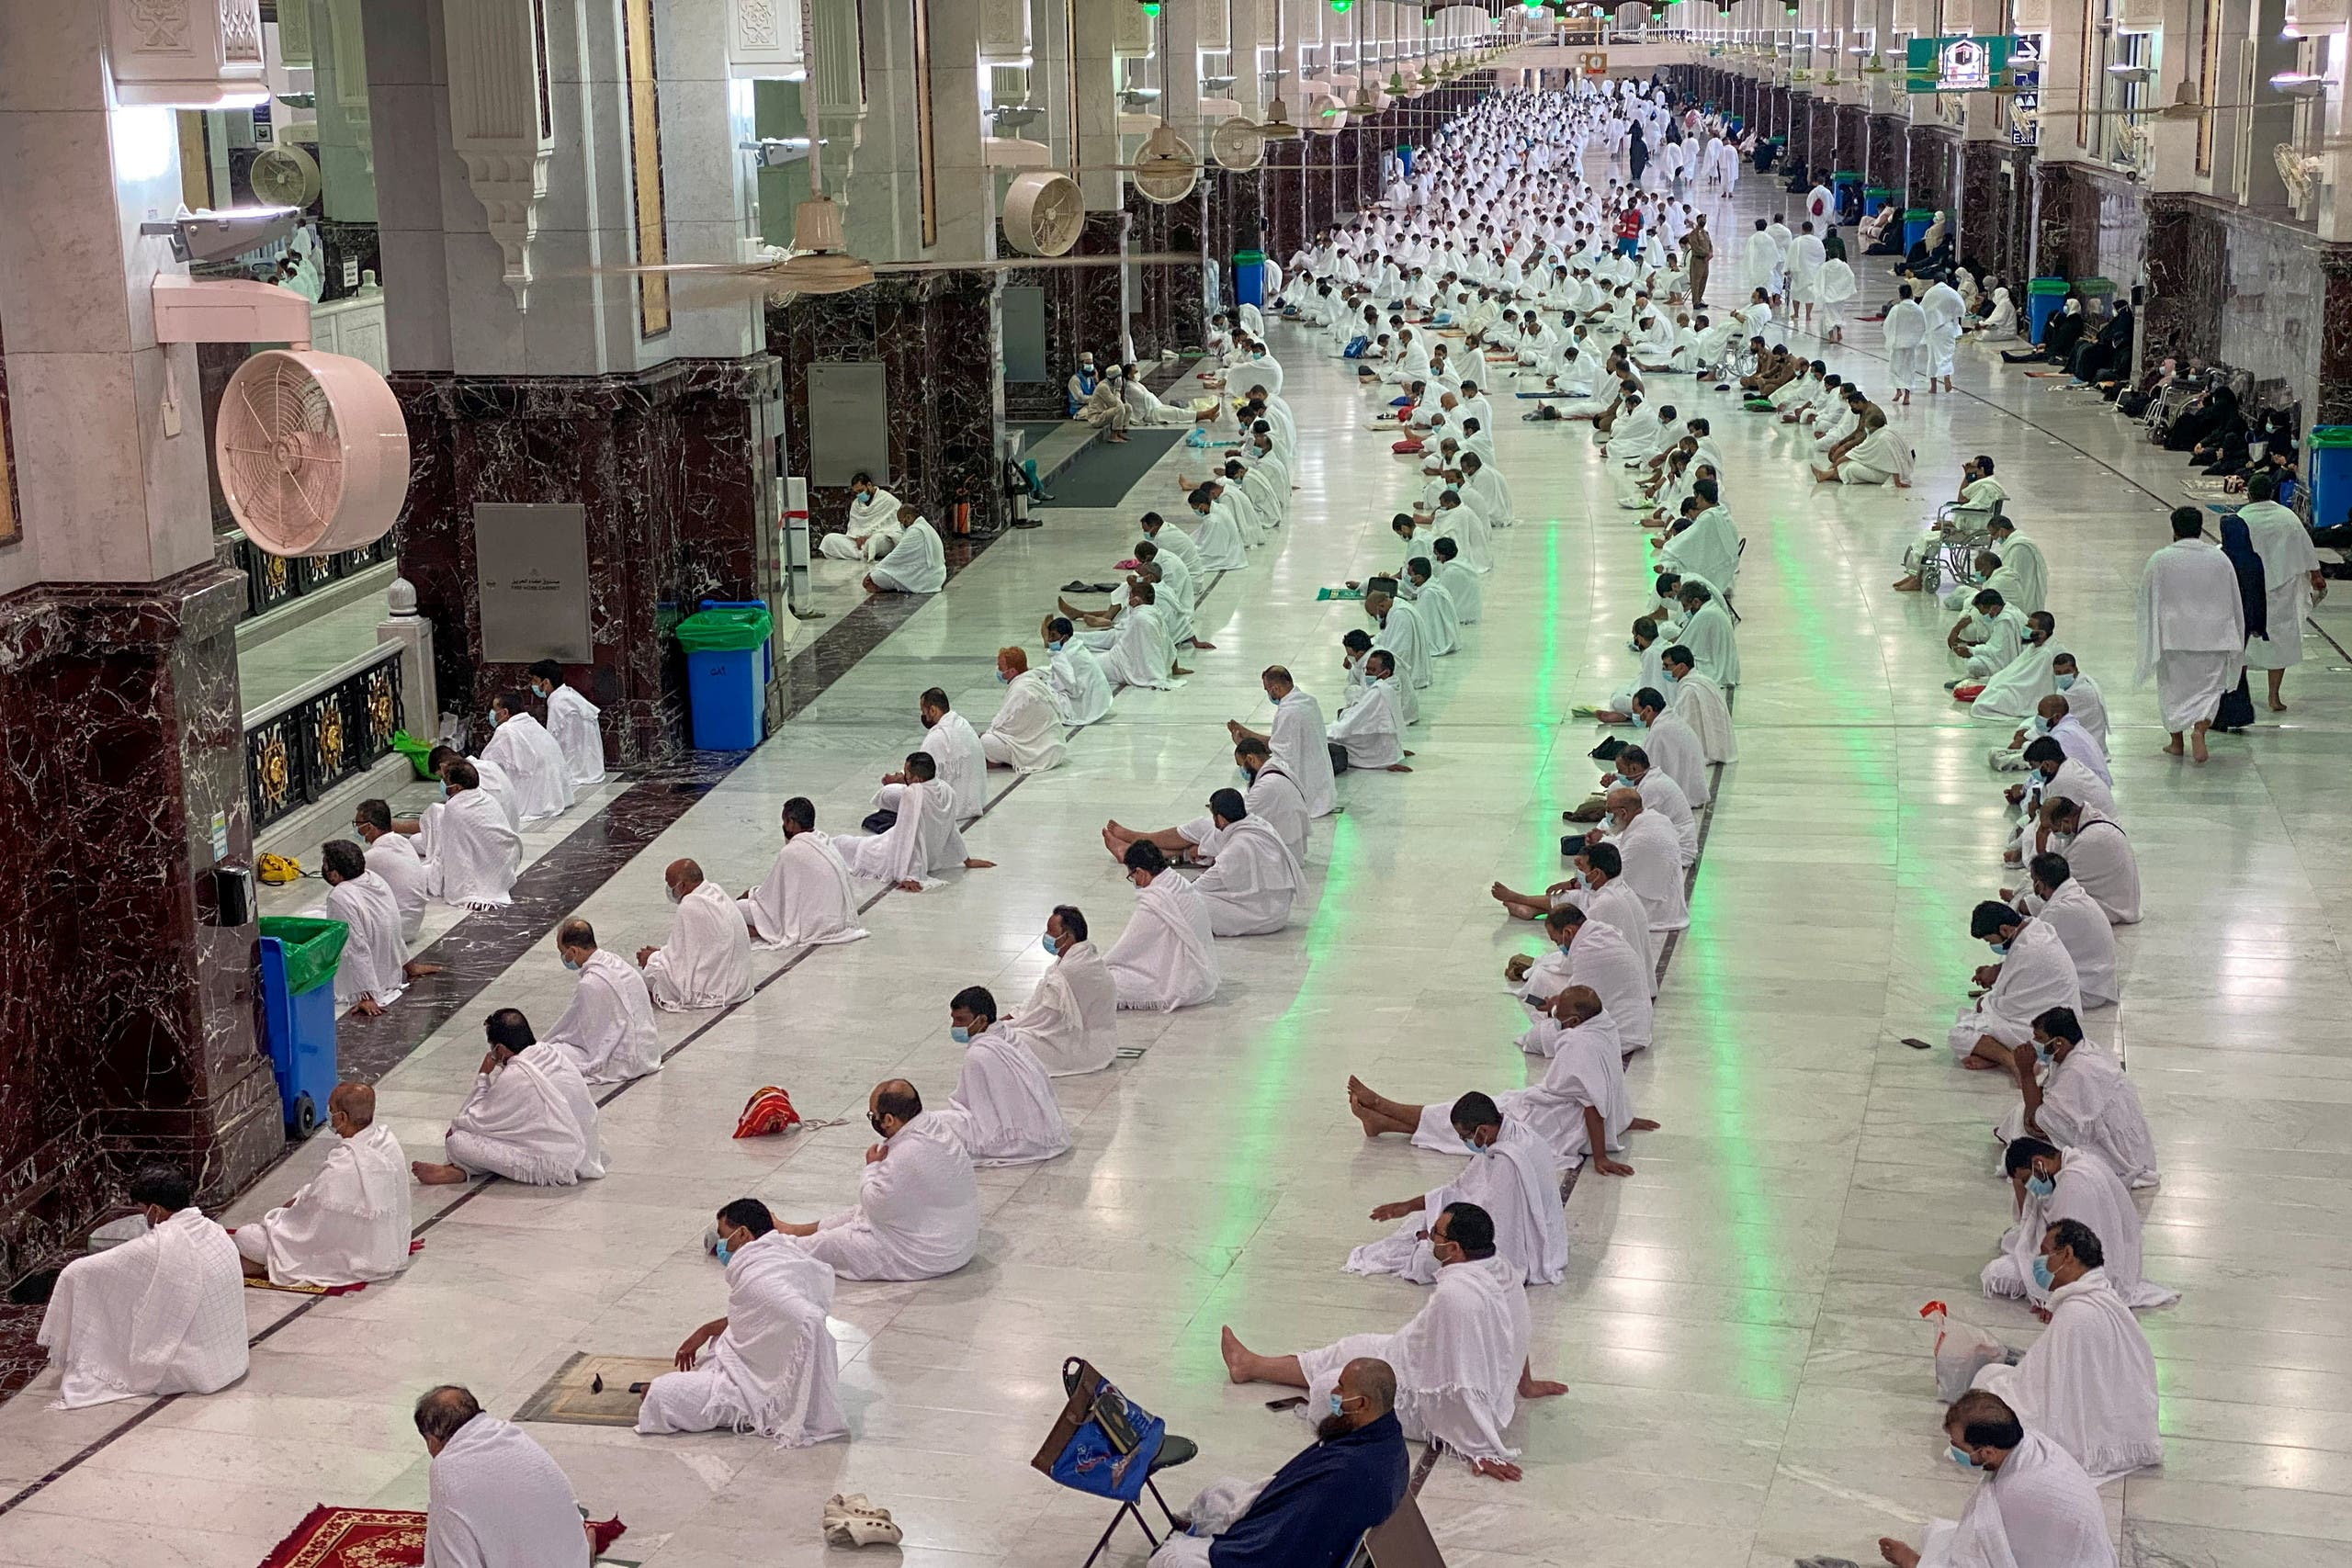 Muslims perform Friday prayers at the Grand Mosque during the holy month of Ramadan, in the holy city of Mecca, Saudi Arabia, April 16, 2021. (Reuters)